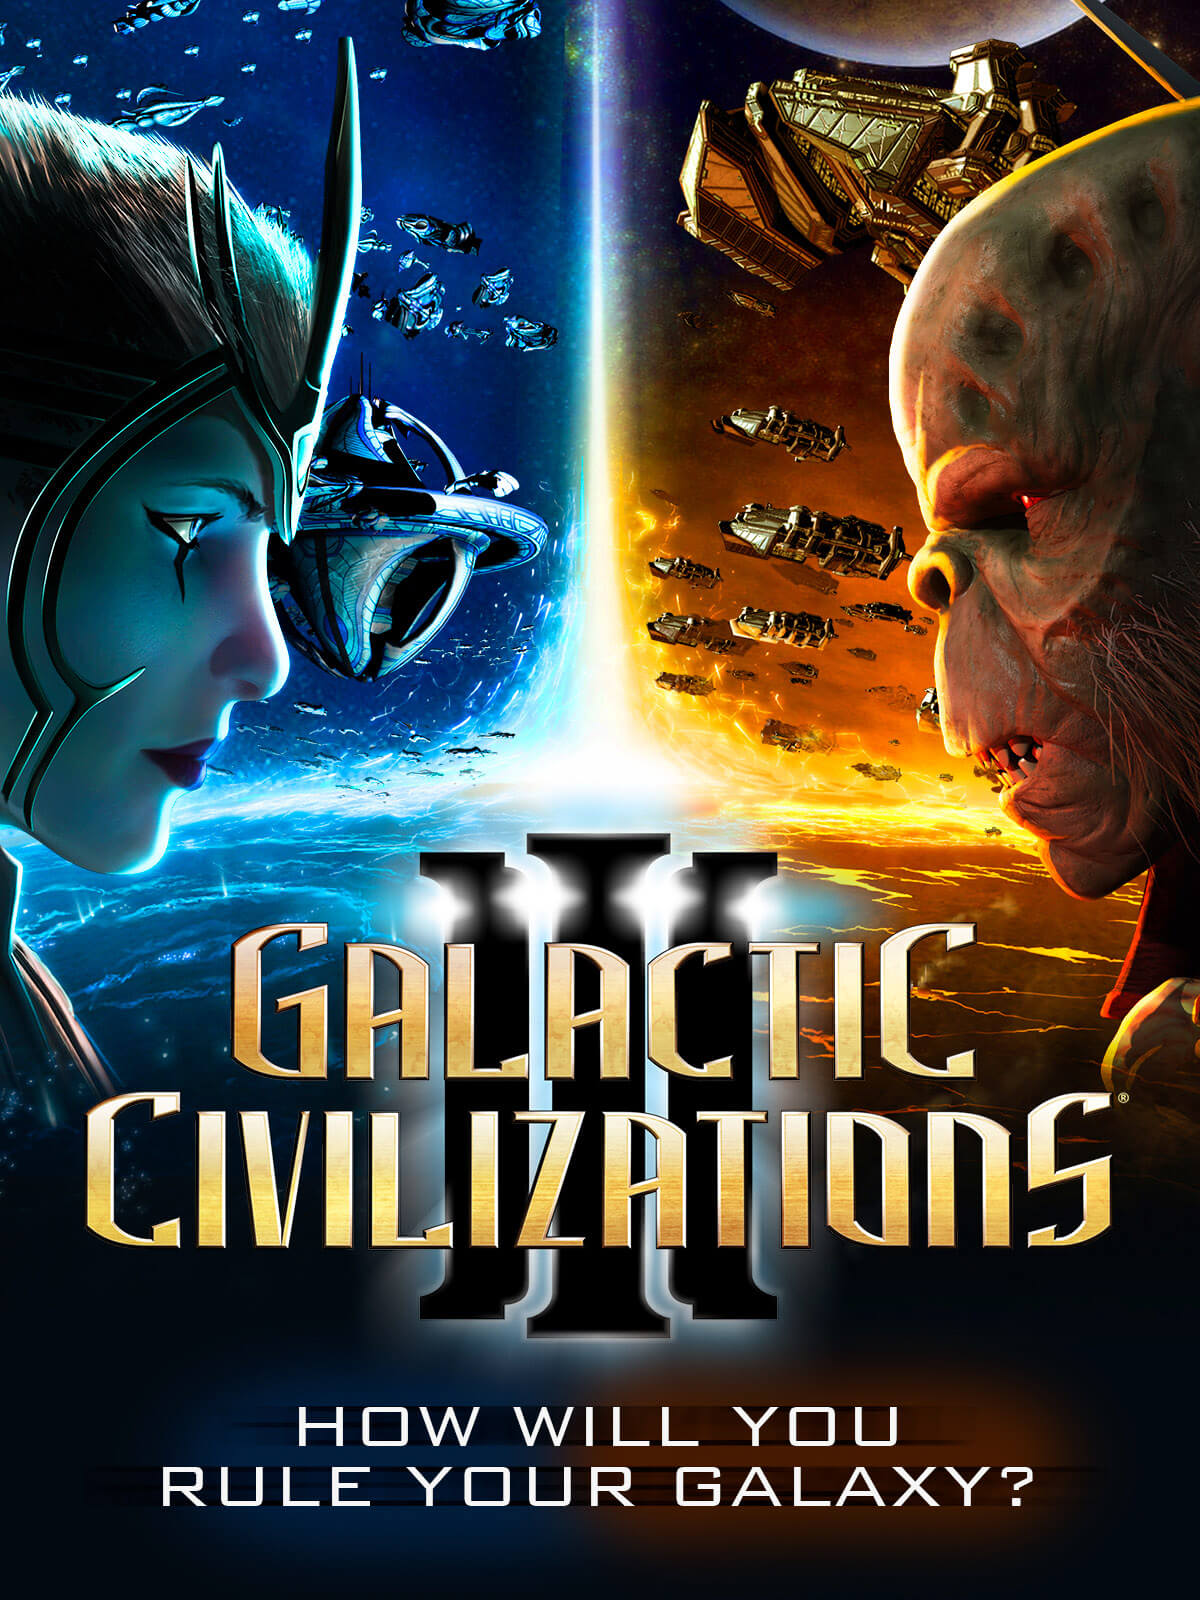 Galactic Civilizations III - About the Game